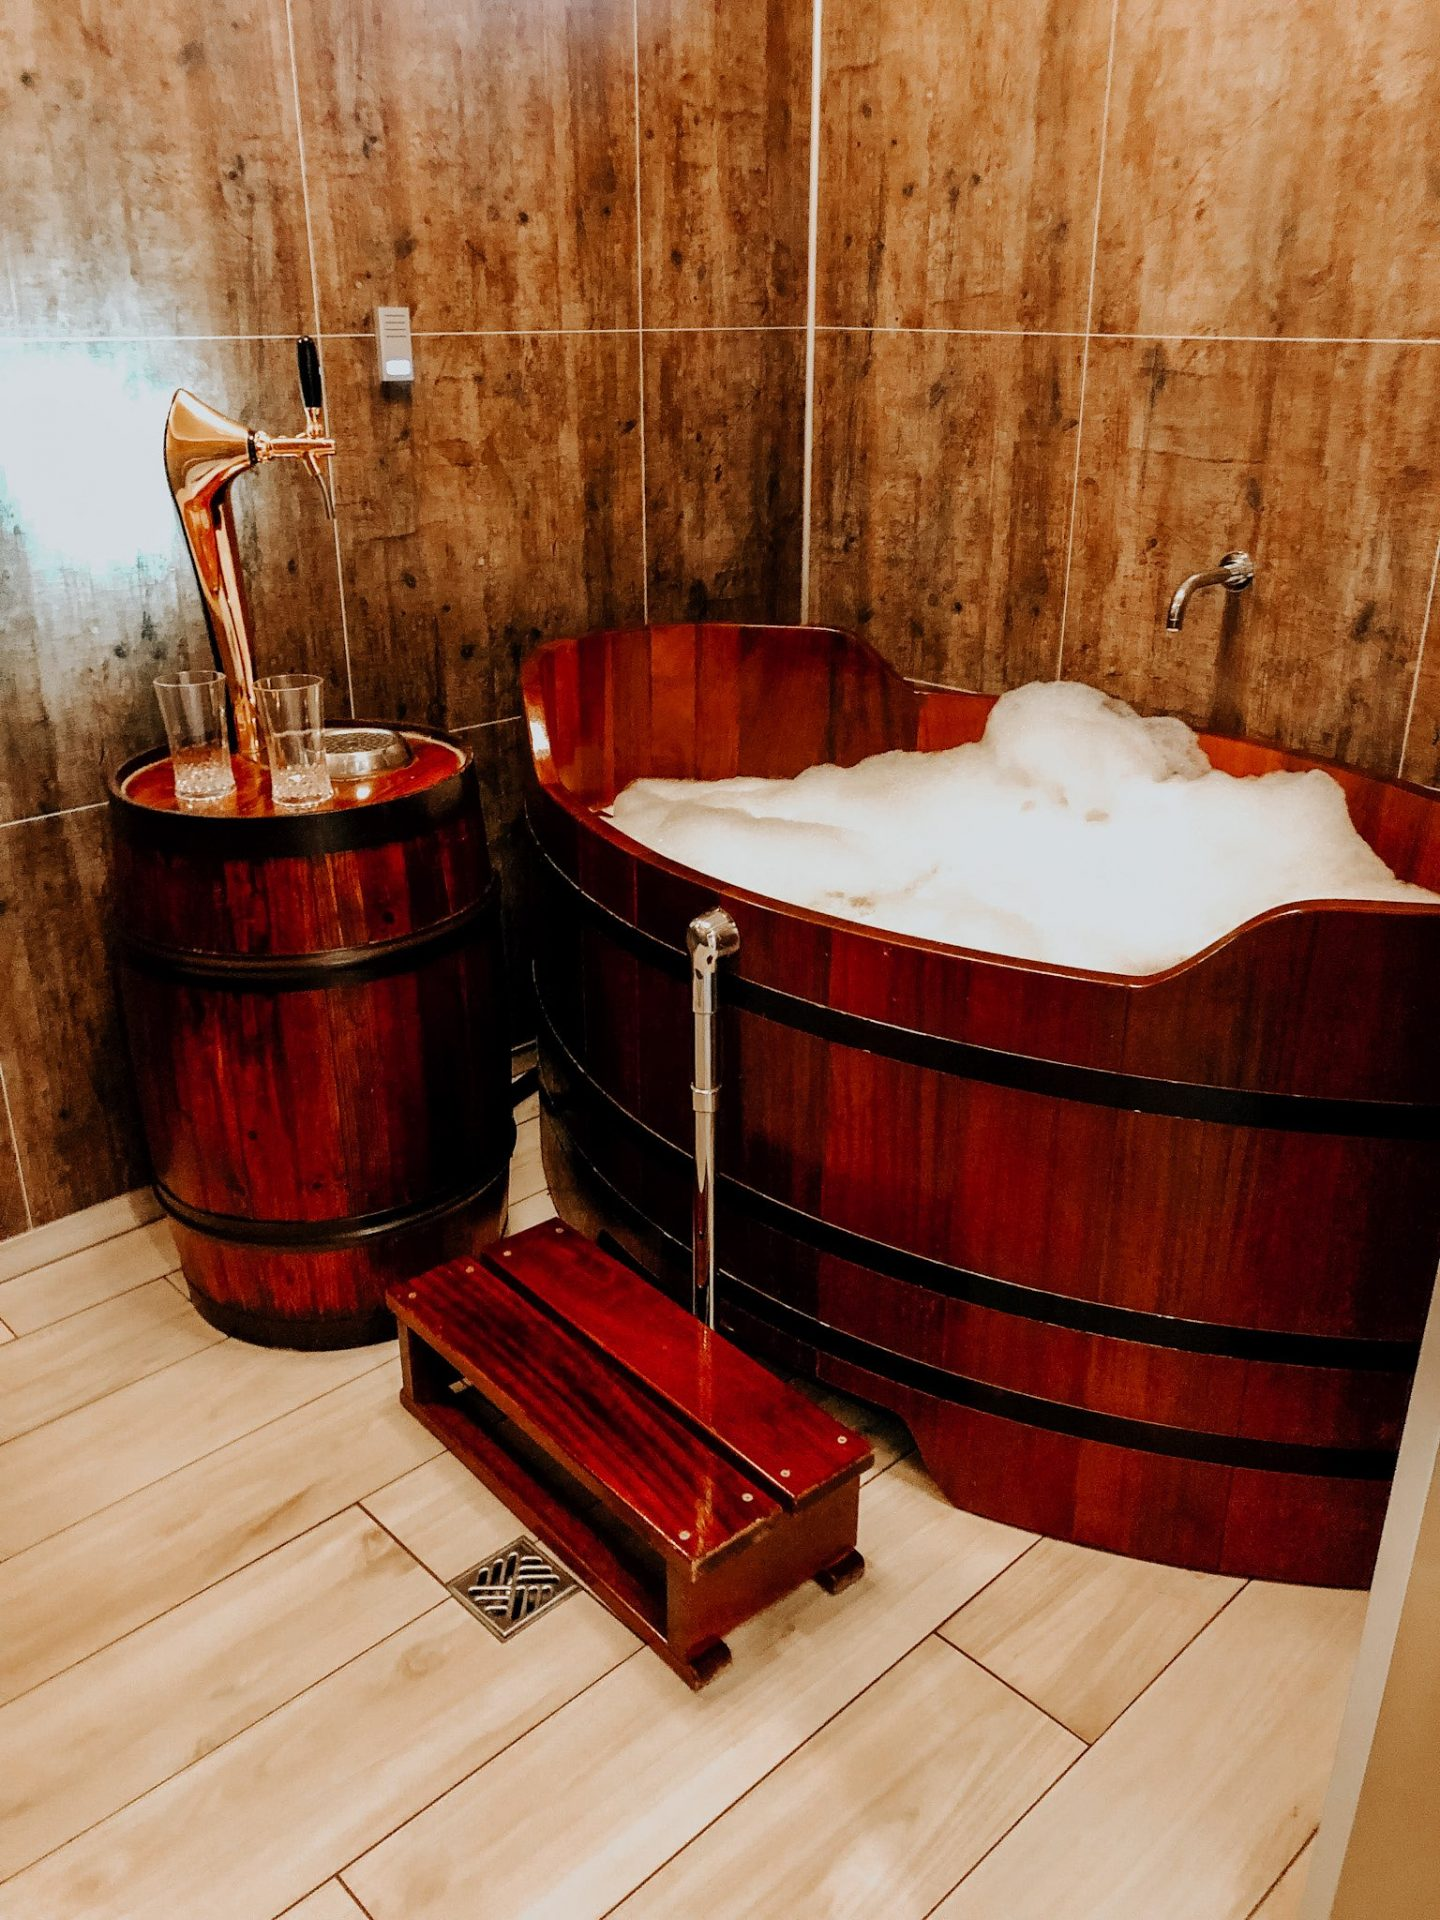 European Beer Travel, wooden bath tub filled with suds and beer with a stepstool into the rub and a one spout draft to drink beer with two beer glasses sitting next to it in a private room.